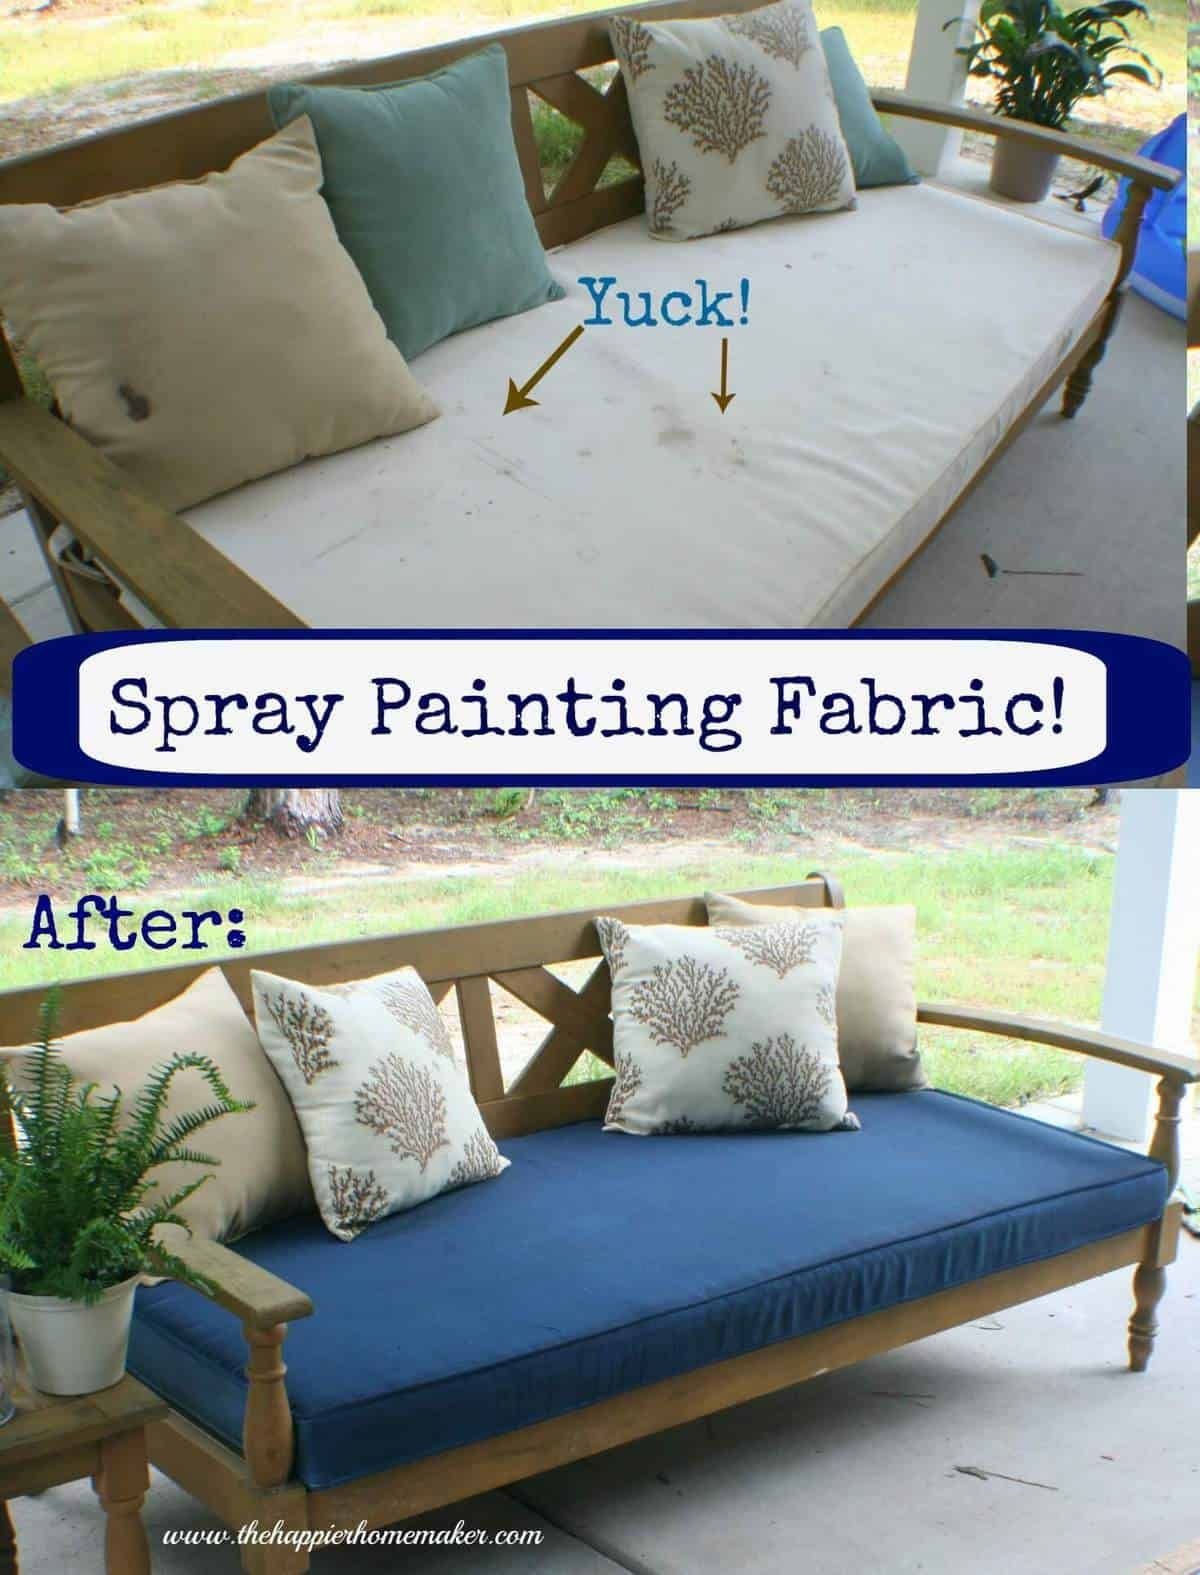 Yes, you can spray paint fabric! This step by step tutorial shows you how to paint fabric without leaving it crunchy using fabric spray paint!